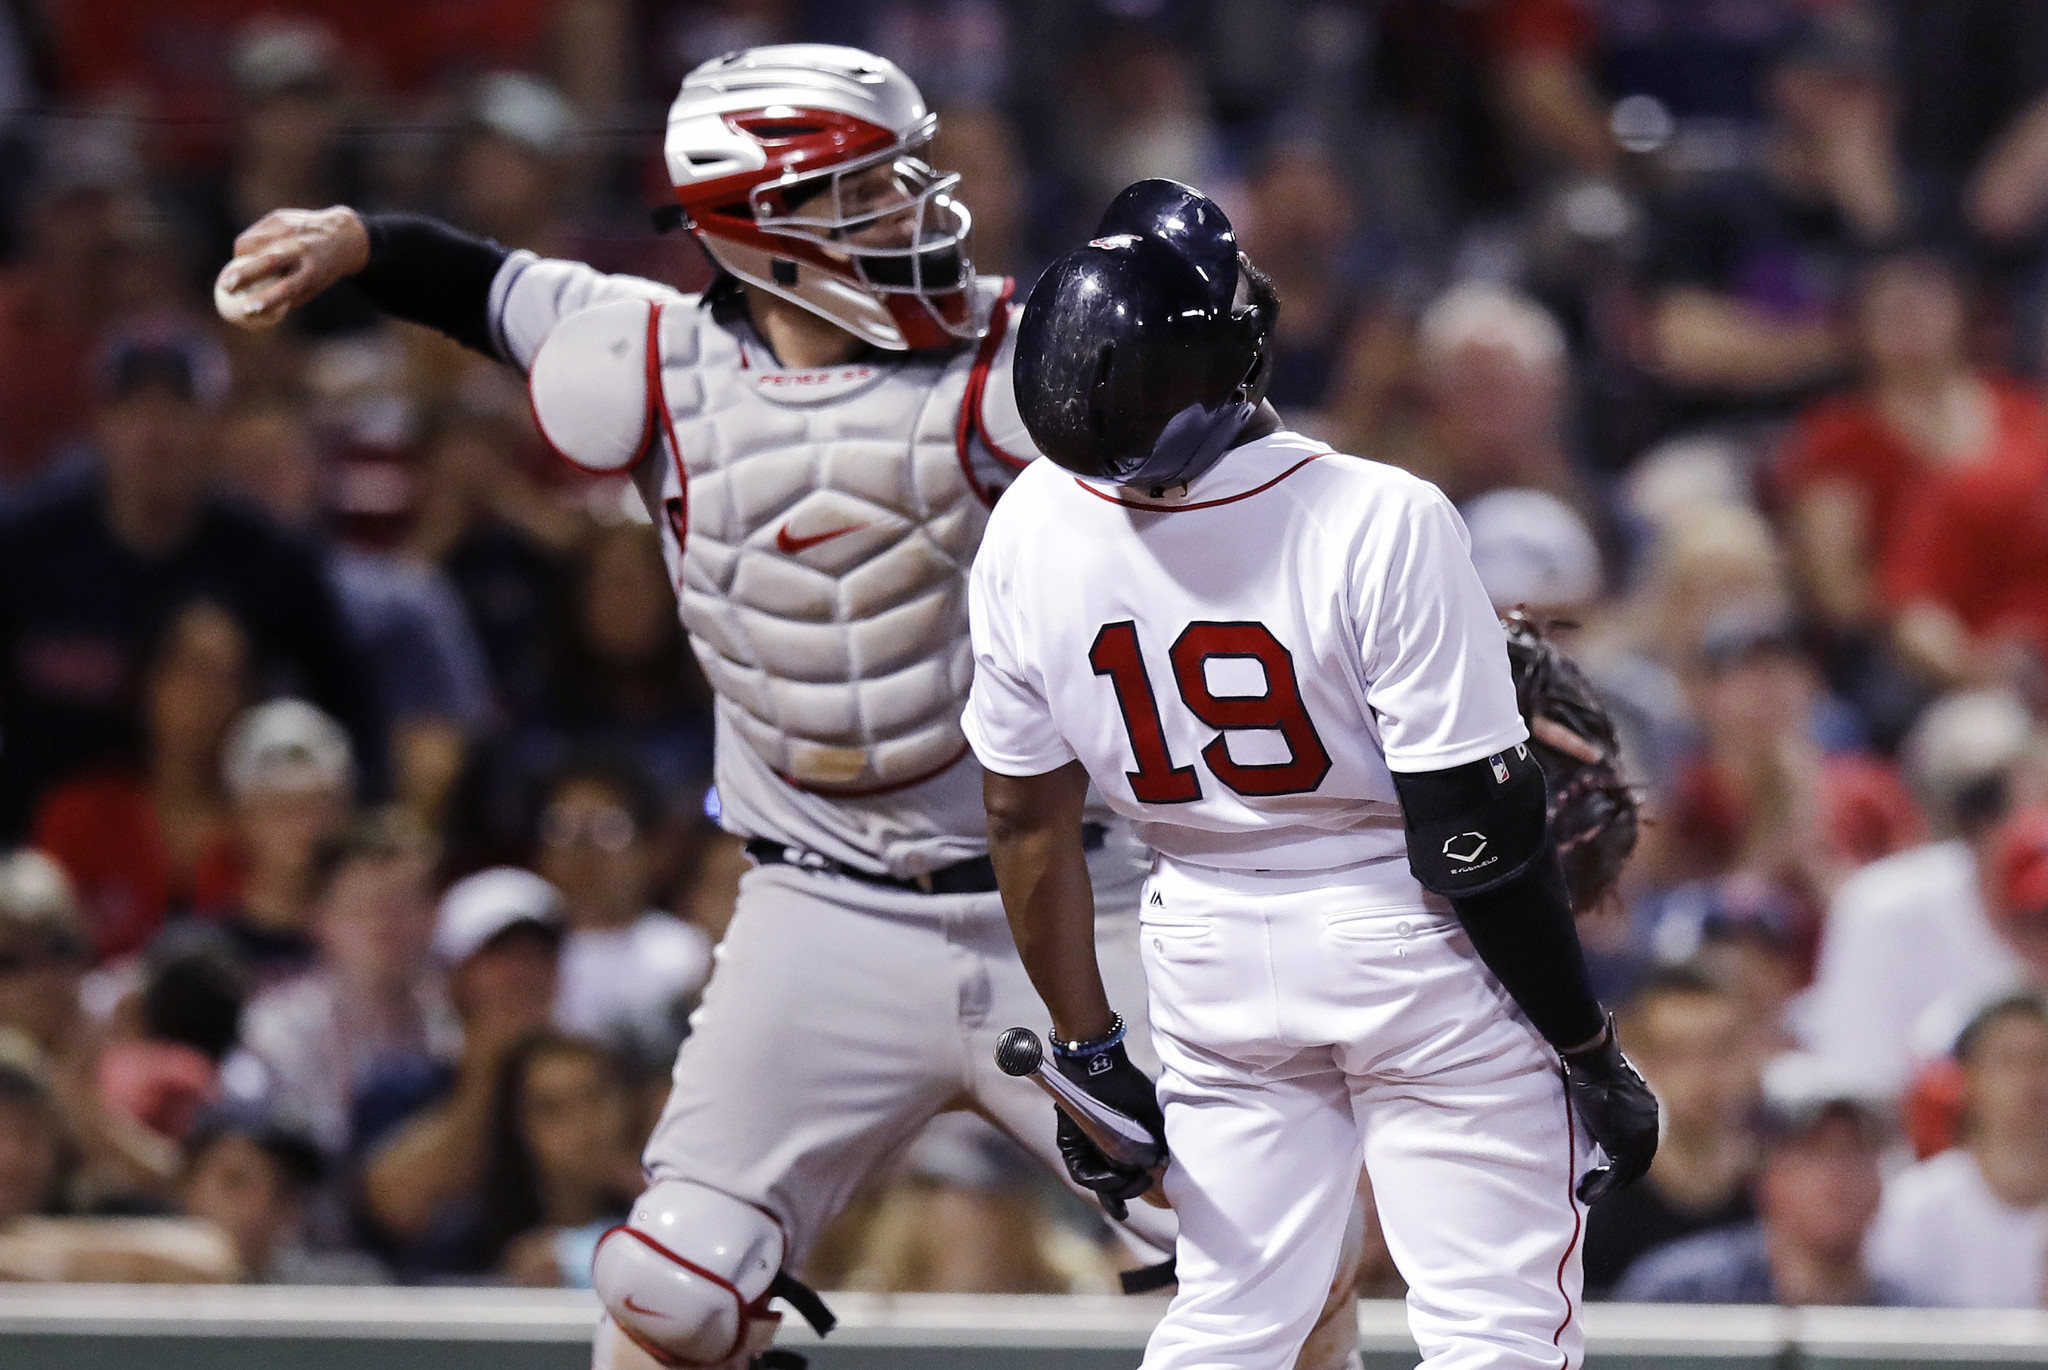 Hc-red-sox-indians-0815-20170814